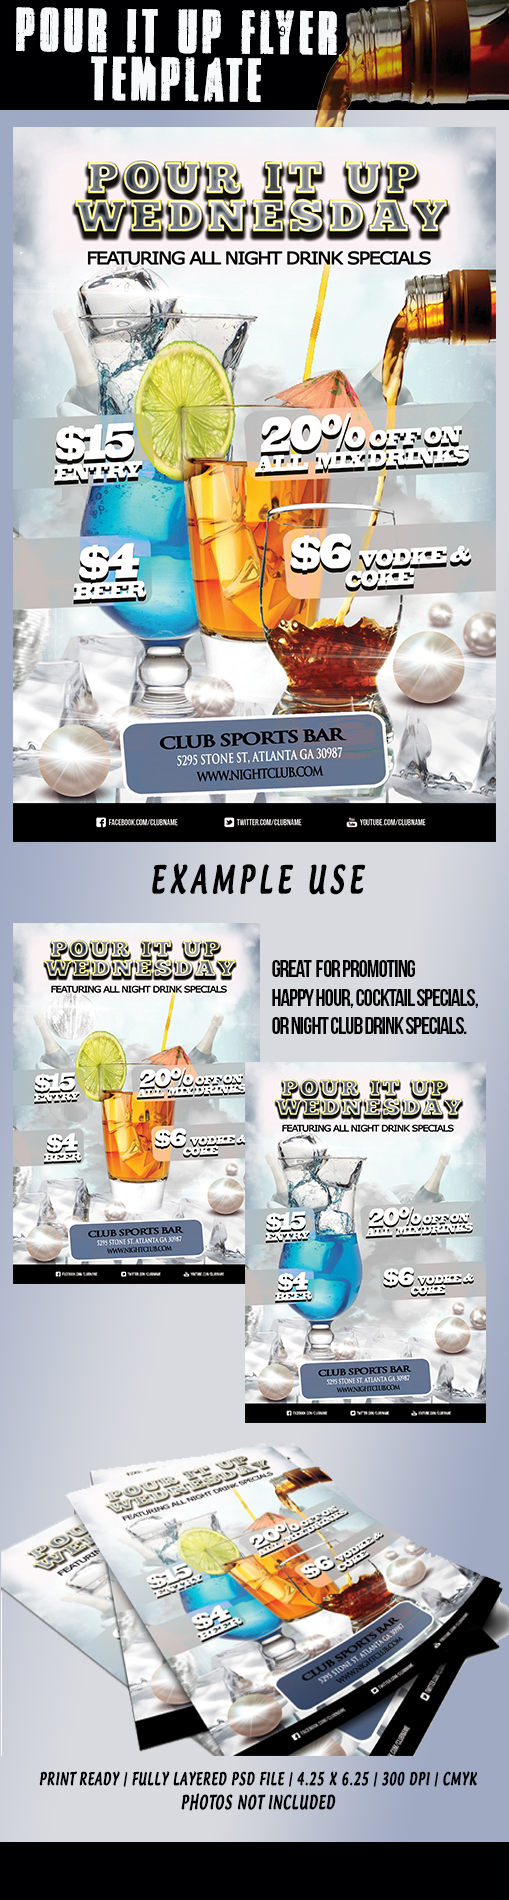 Pour it up drink specials template free download on behance saigontimesfo